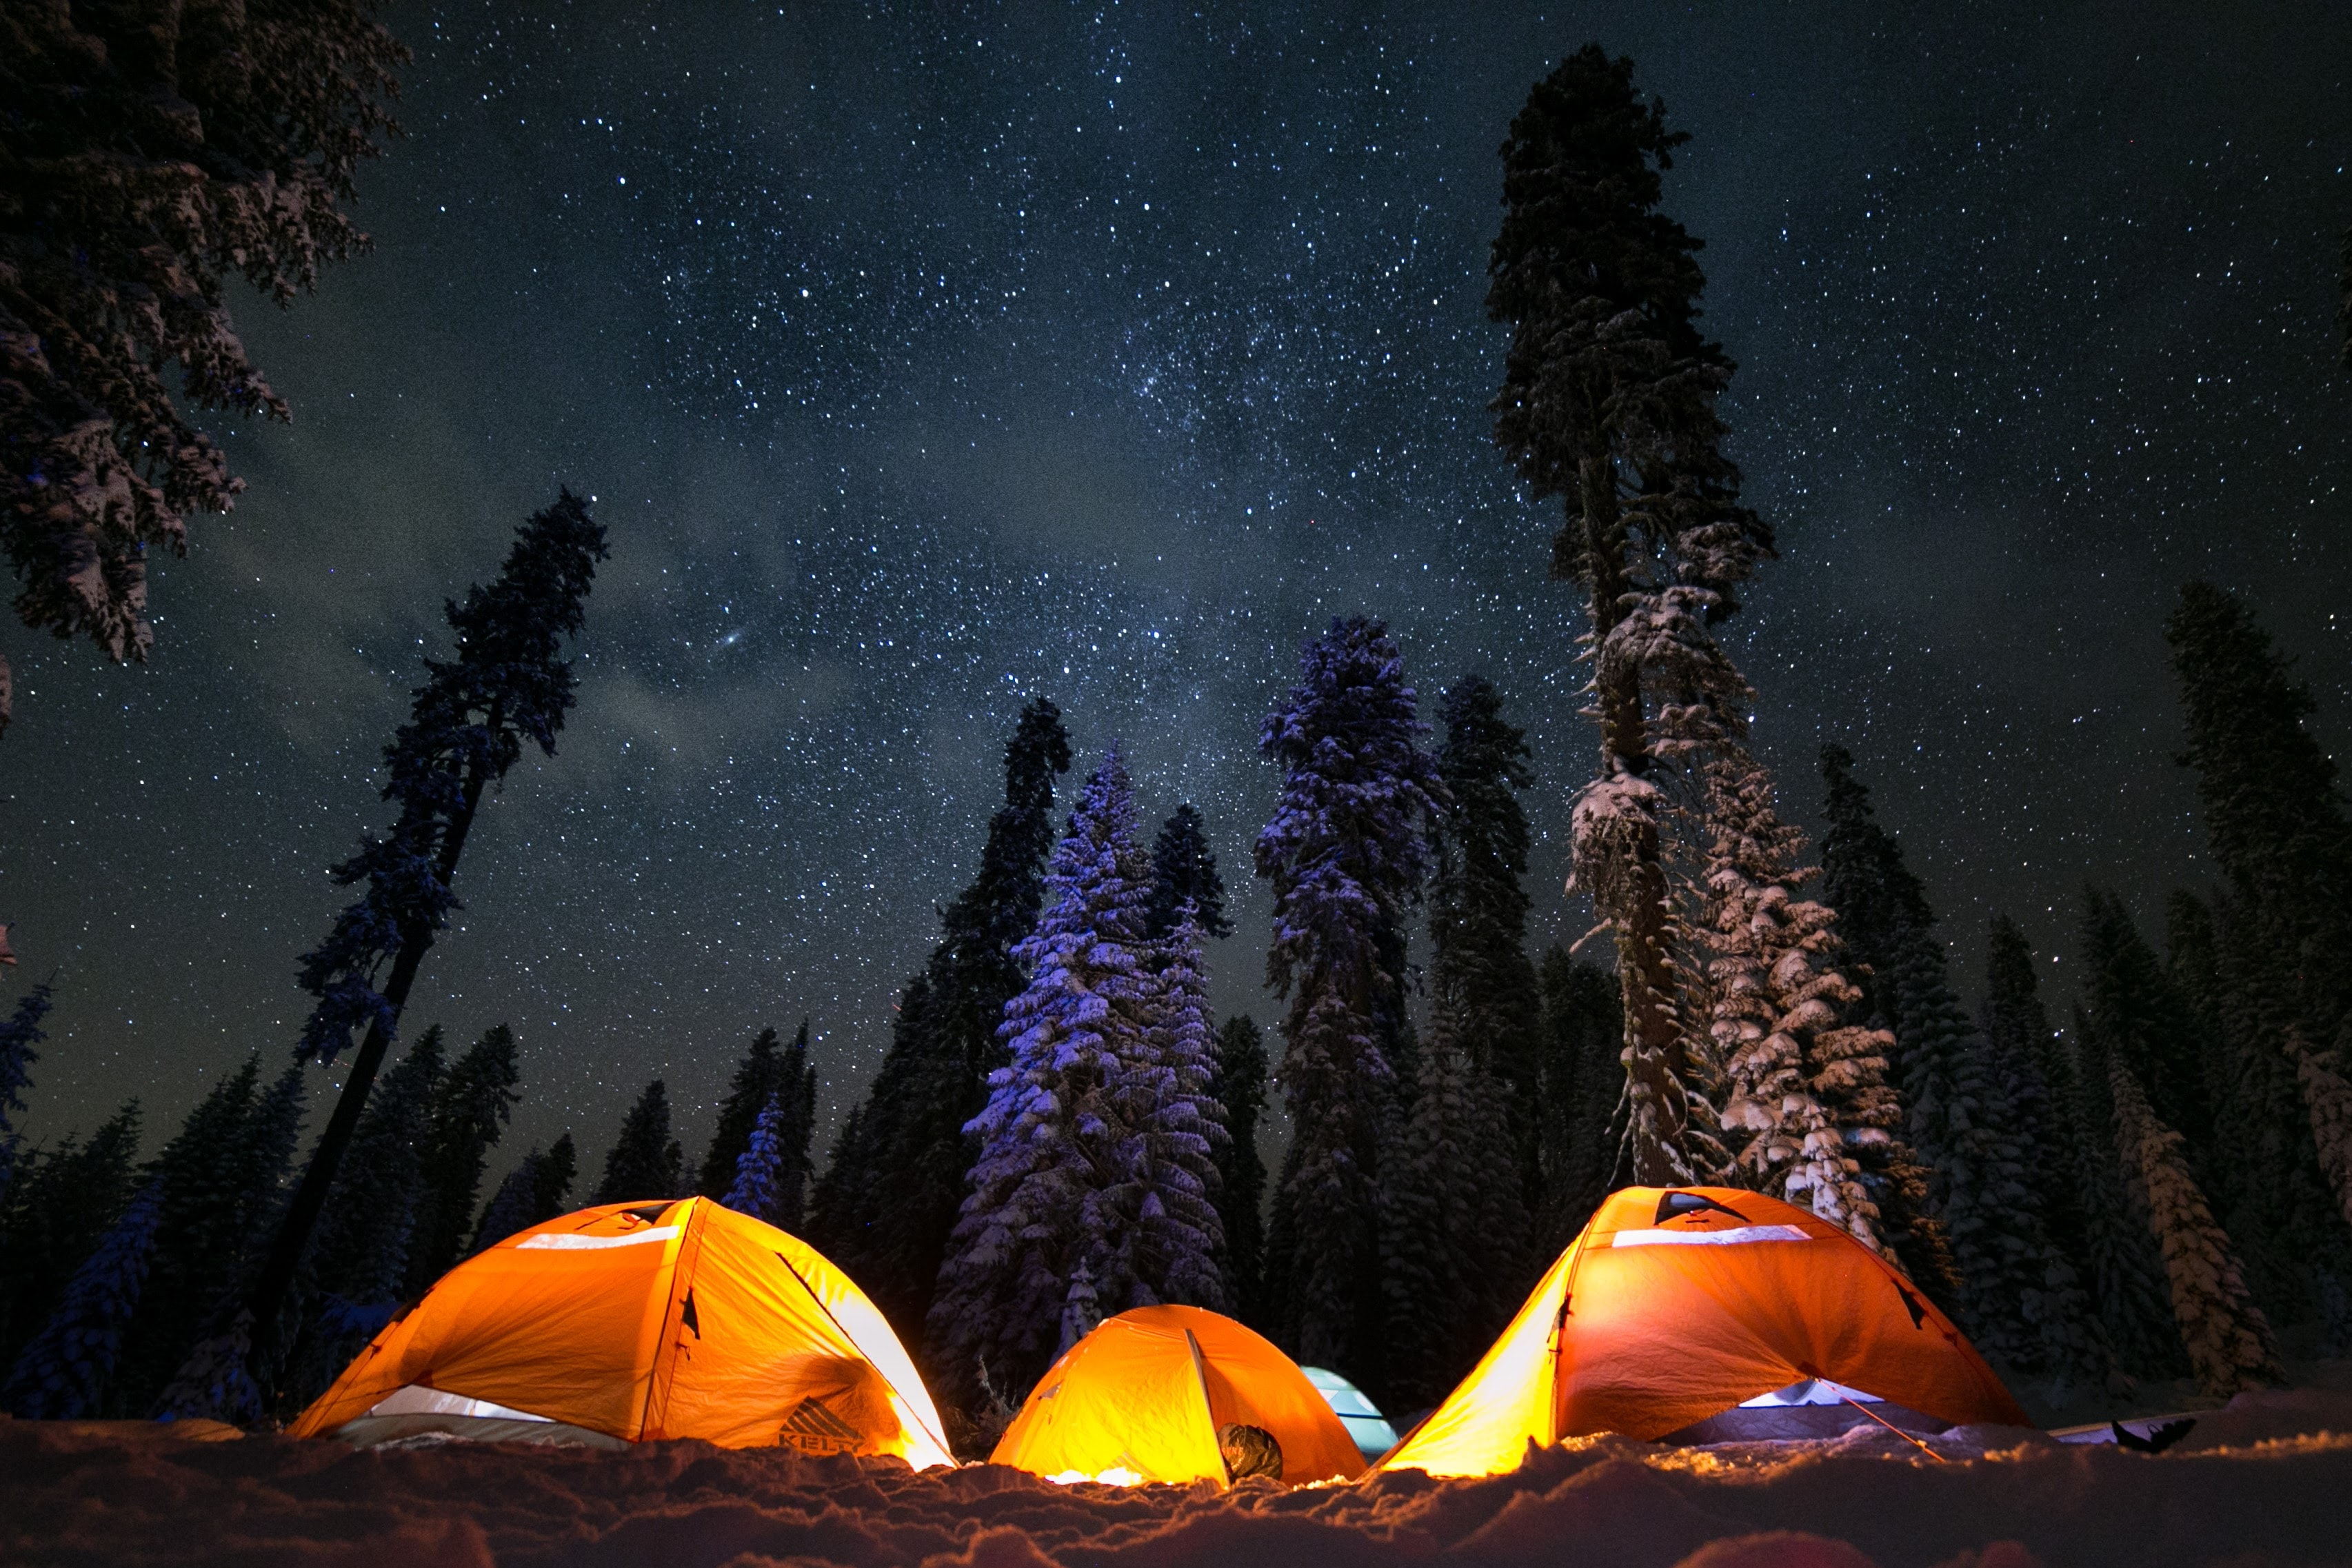 three tents under stars